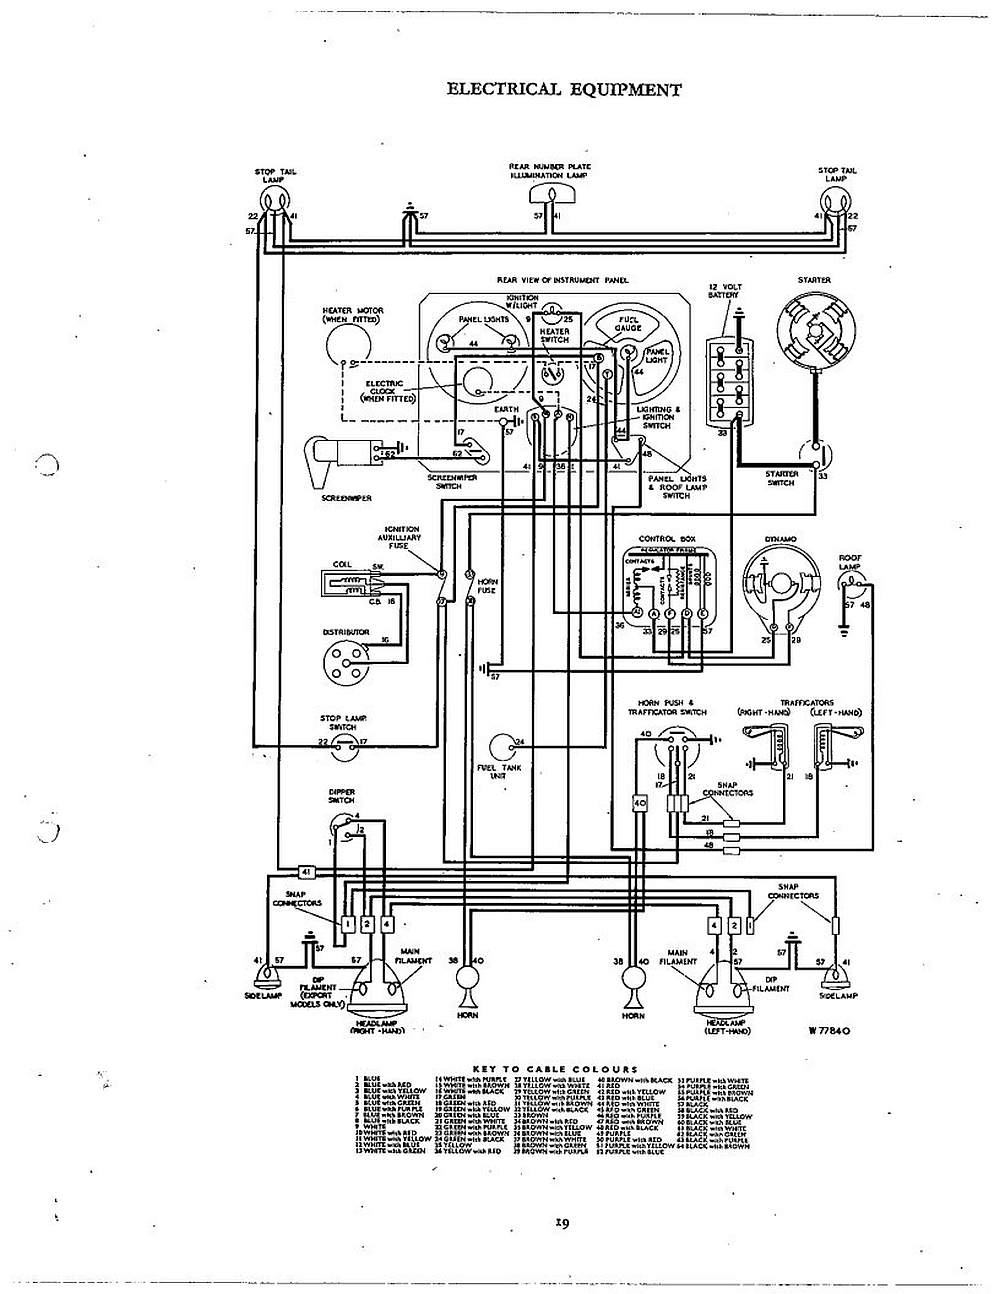 Tr250 Wiring Diagram Box 74 Spitfire Library Schematic